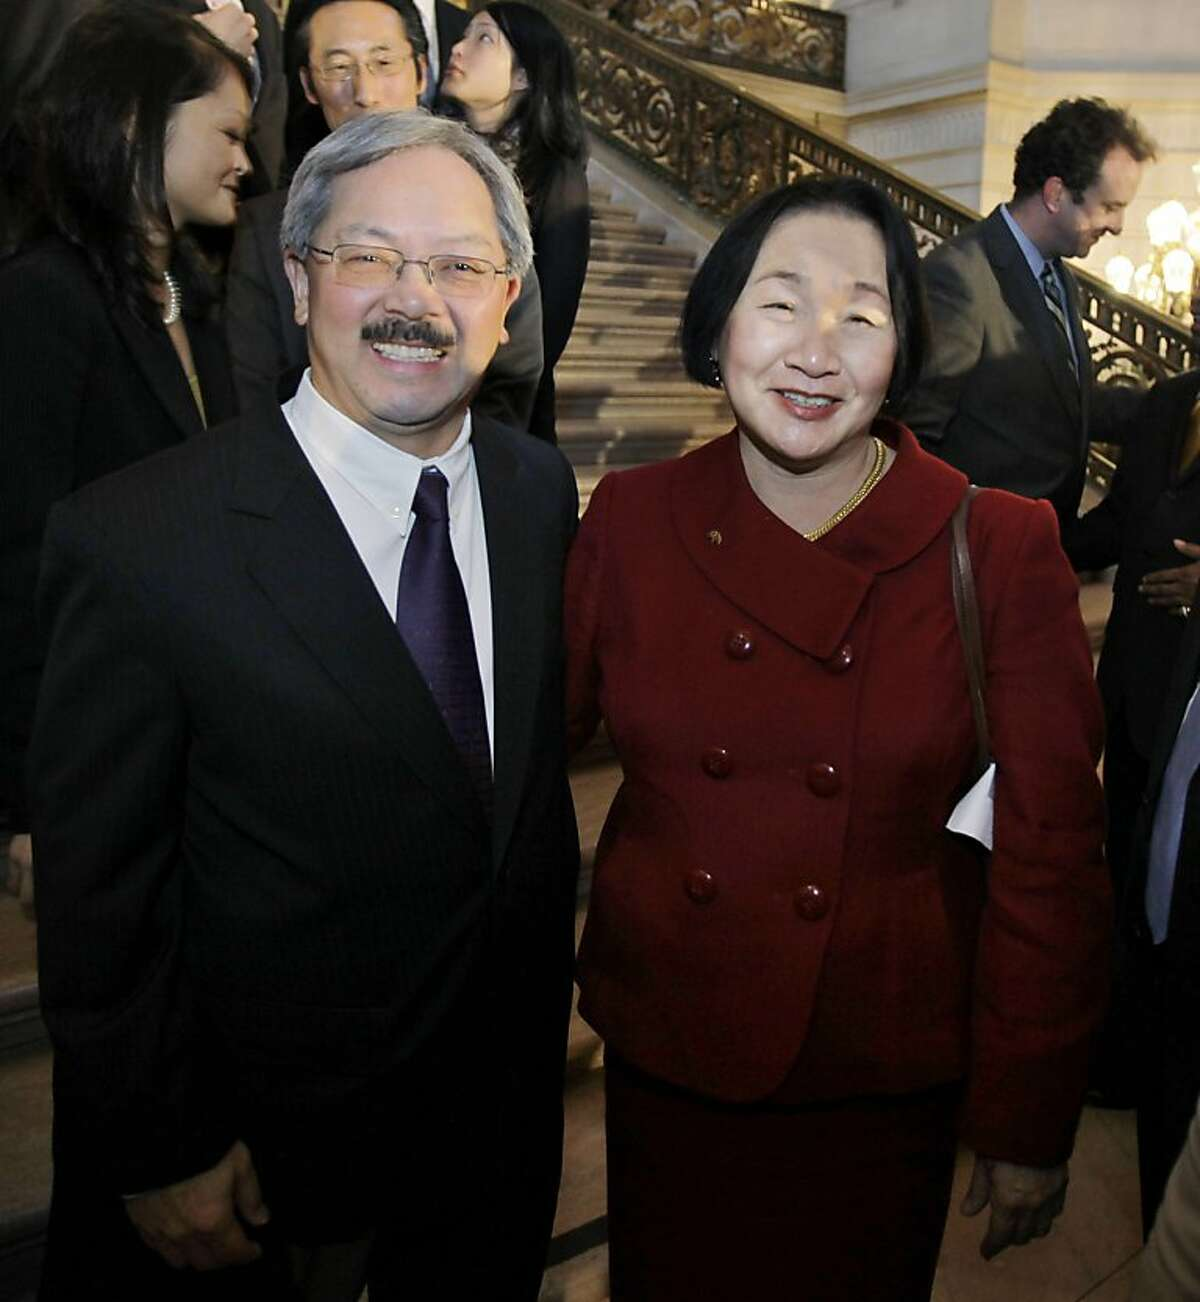 Edwin Lee, left, who was named interim mayor of San Francisco, poses with Oakland mayor Jean Quan, at San Francisco City Hall in San Francisco, Tuesday, Jan. 11, 2011. The Board of Supervisors on Tuesday named Lee to fill the remainder of Gavin Newsom's term. Newsom was elected California's lieutenant governor in November and took office on Monday.